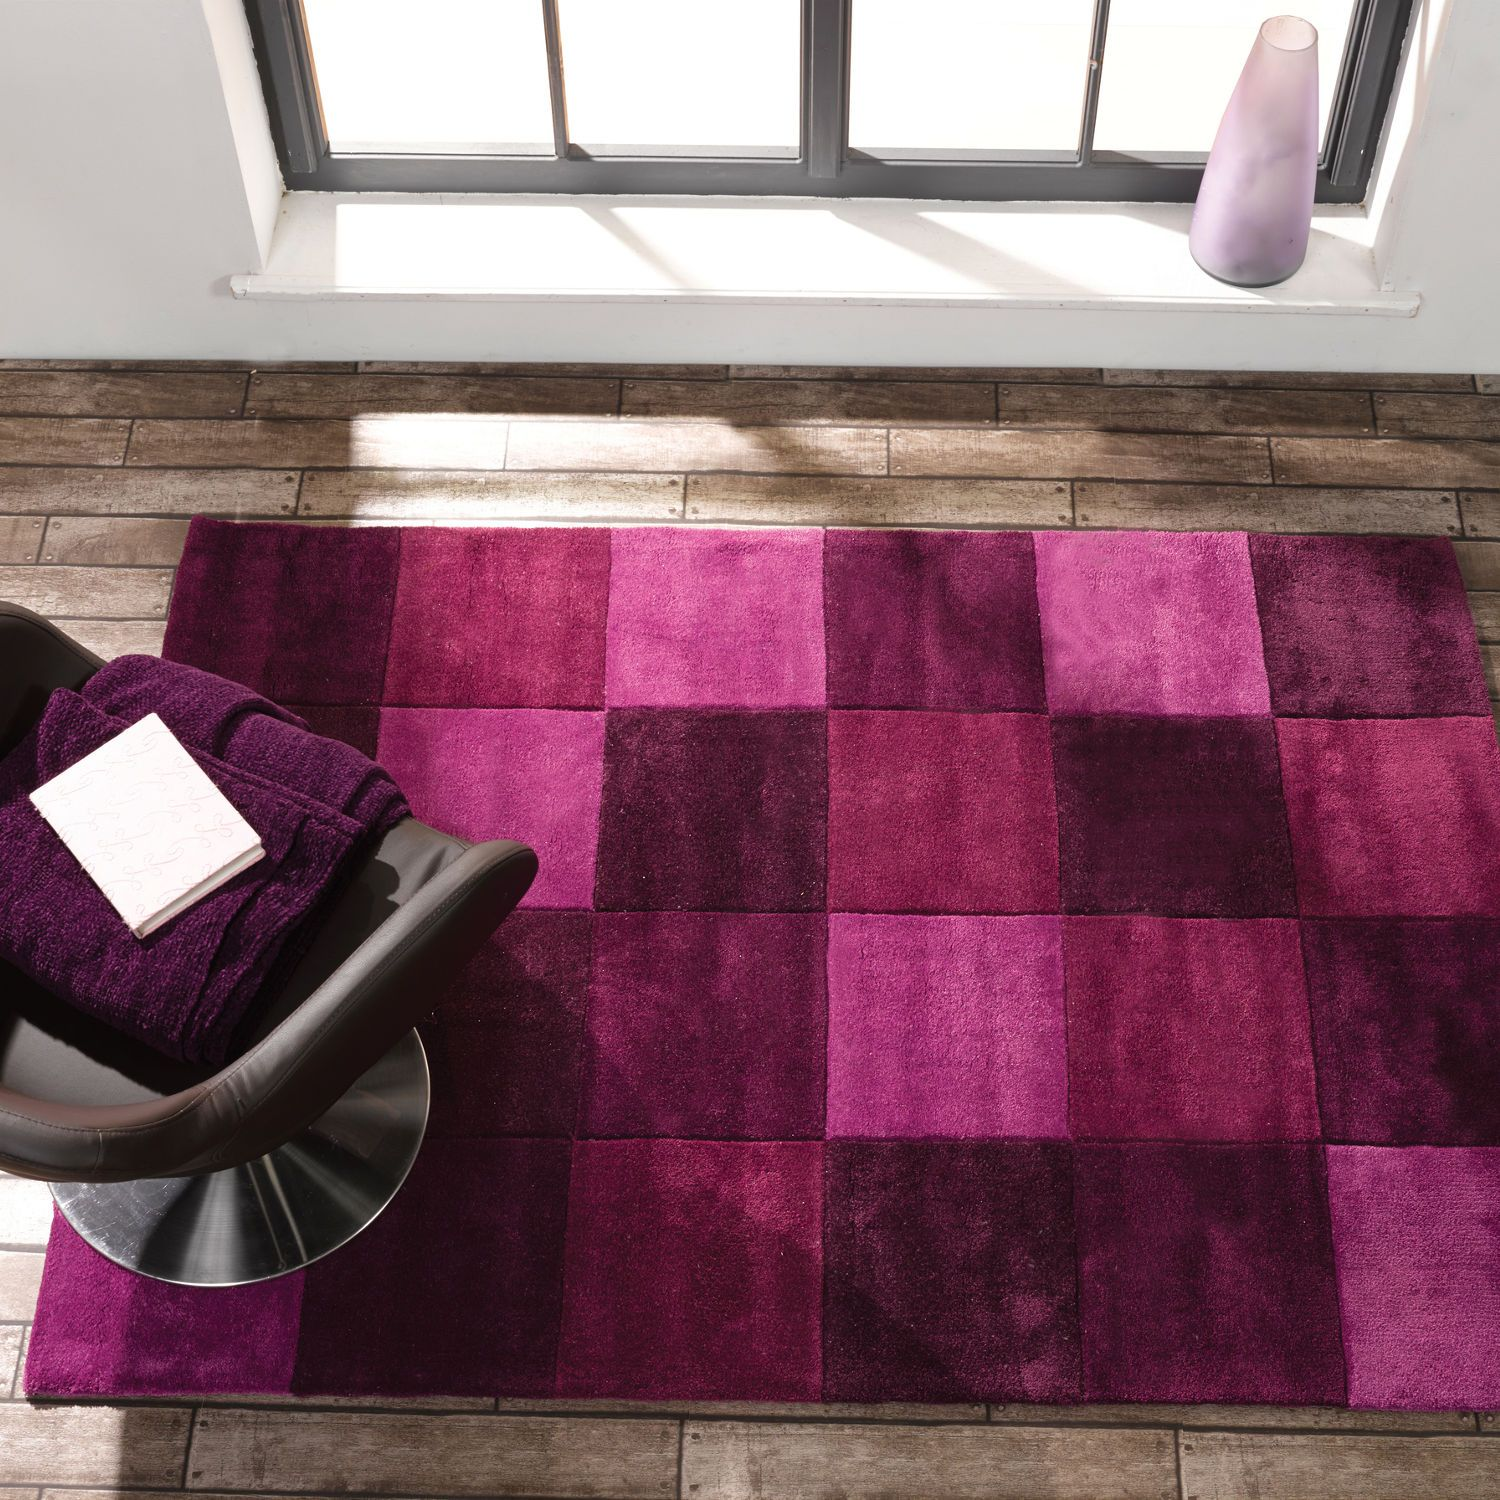 Flair Infinite Inspire Squared Rug In Aubergine Next Day Delivery